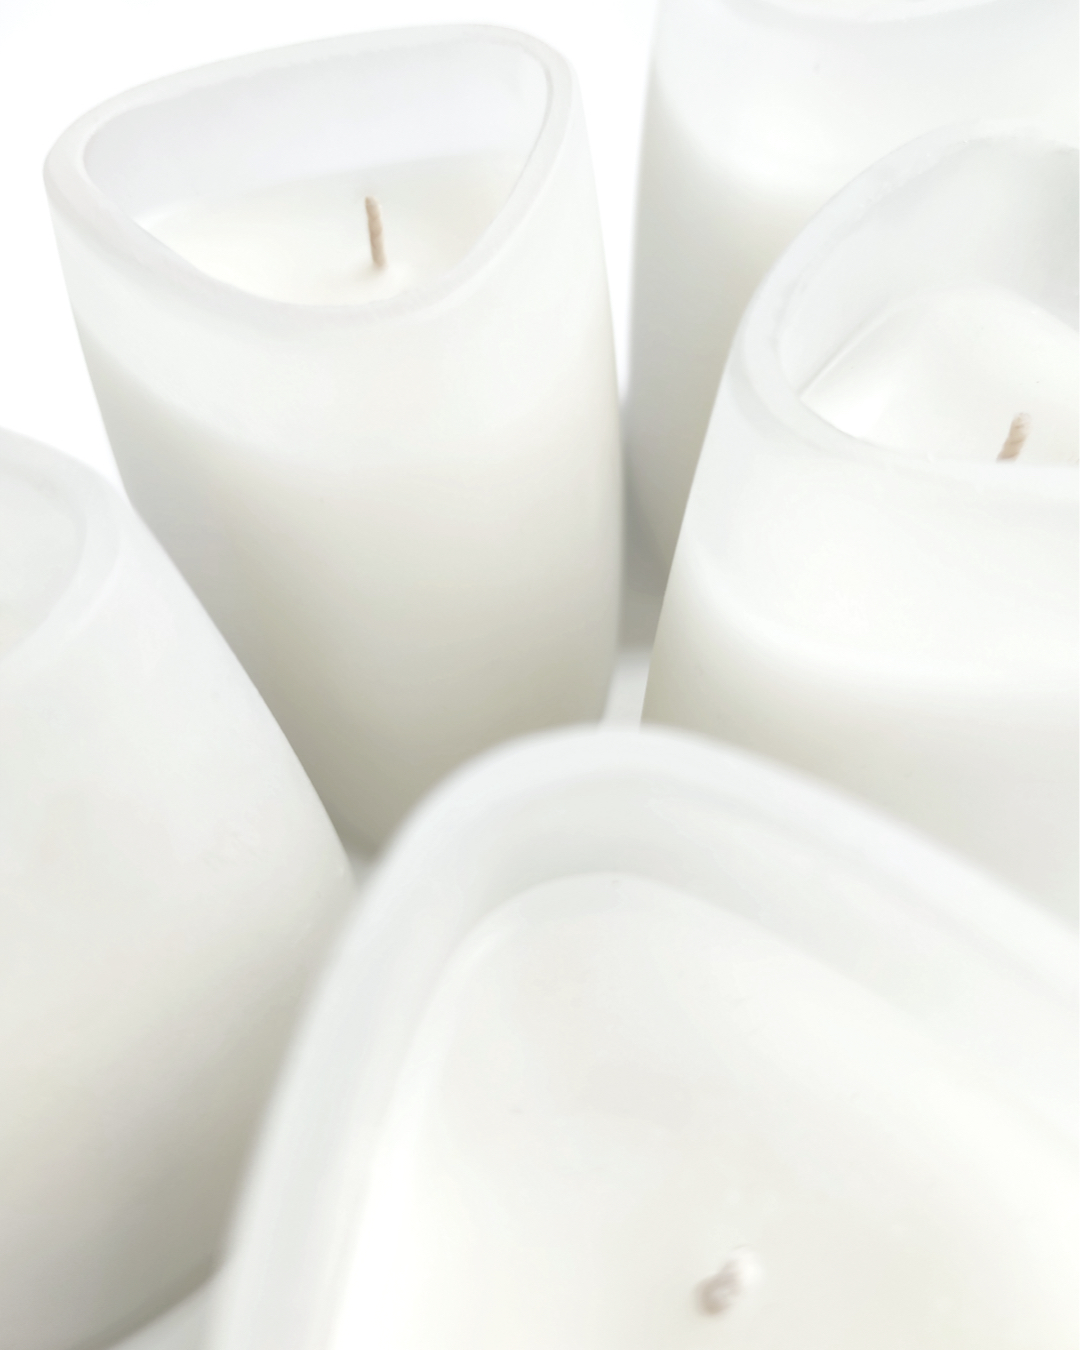 Venote beewax scented Candles